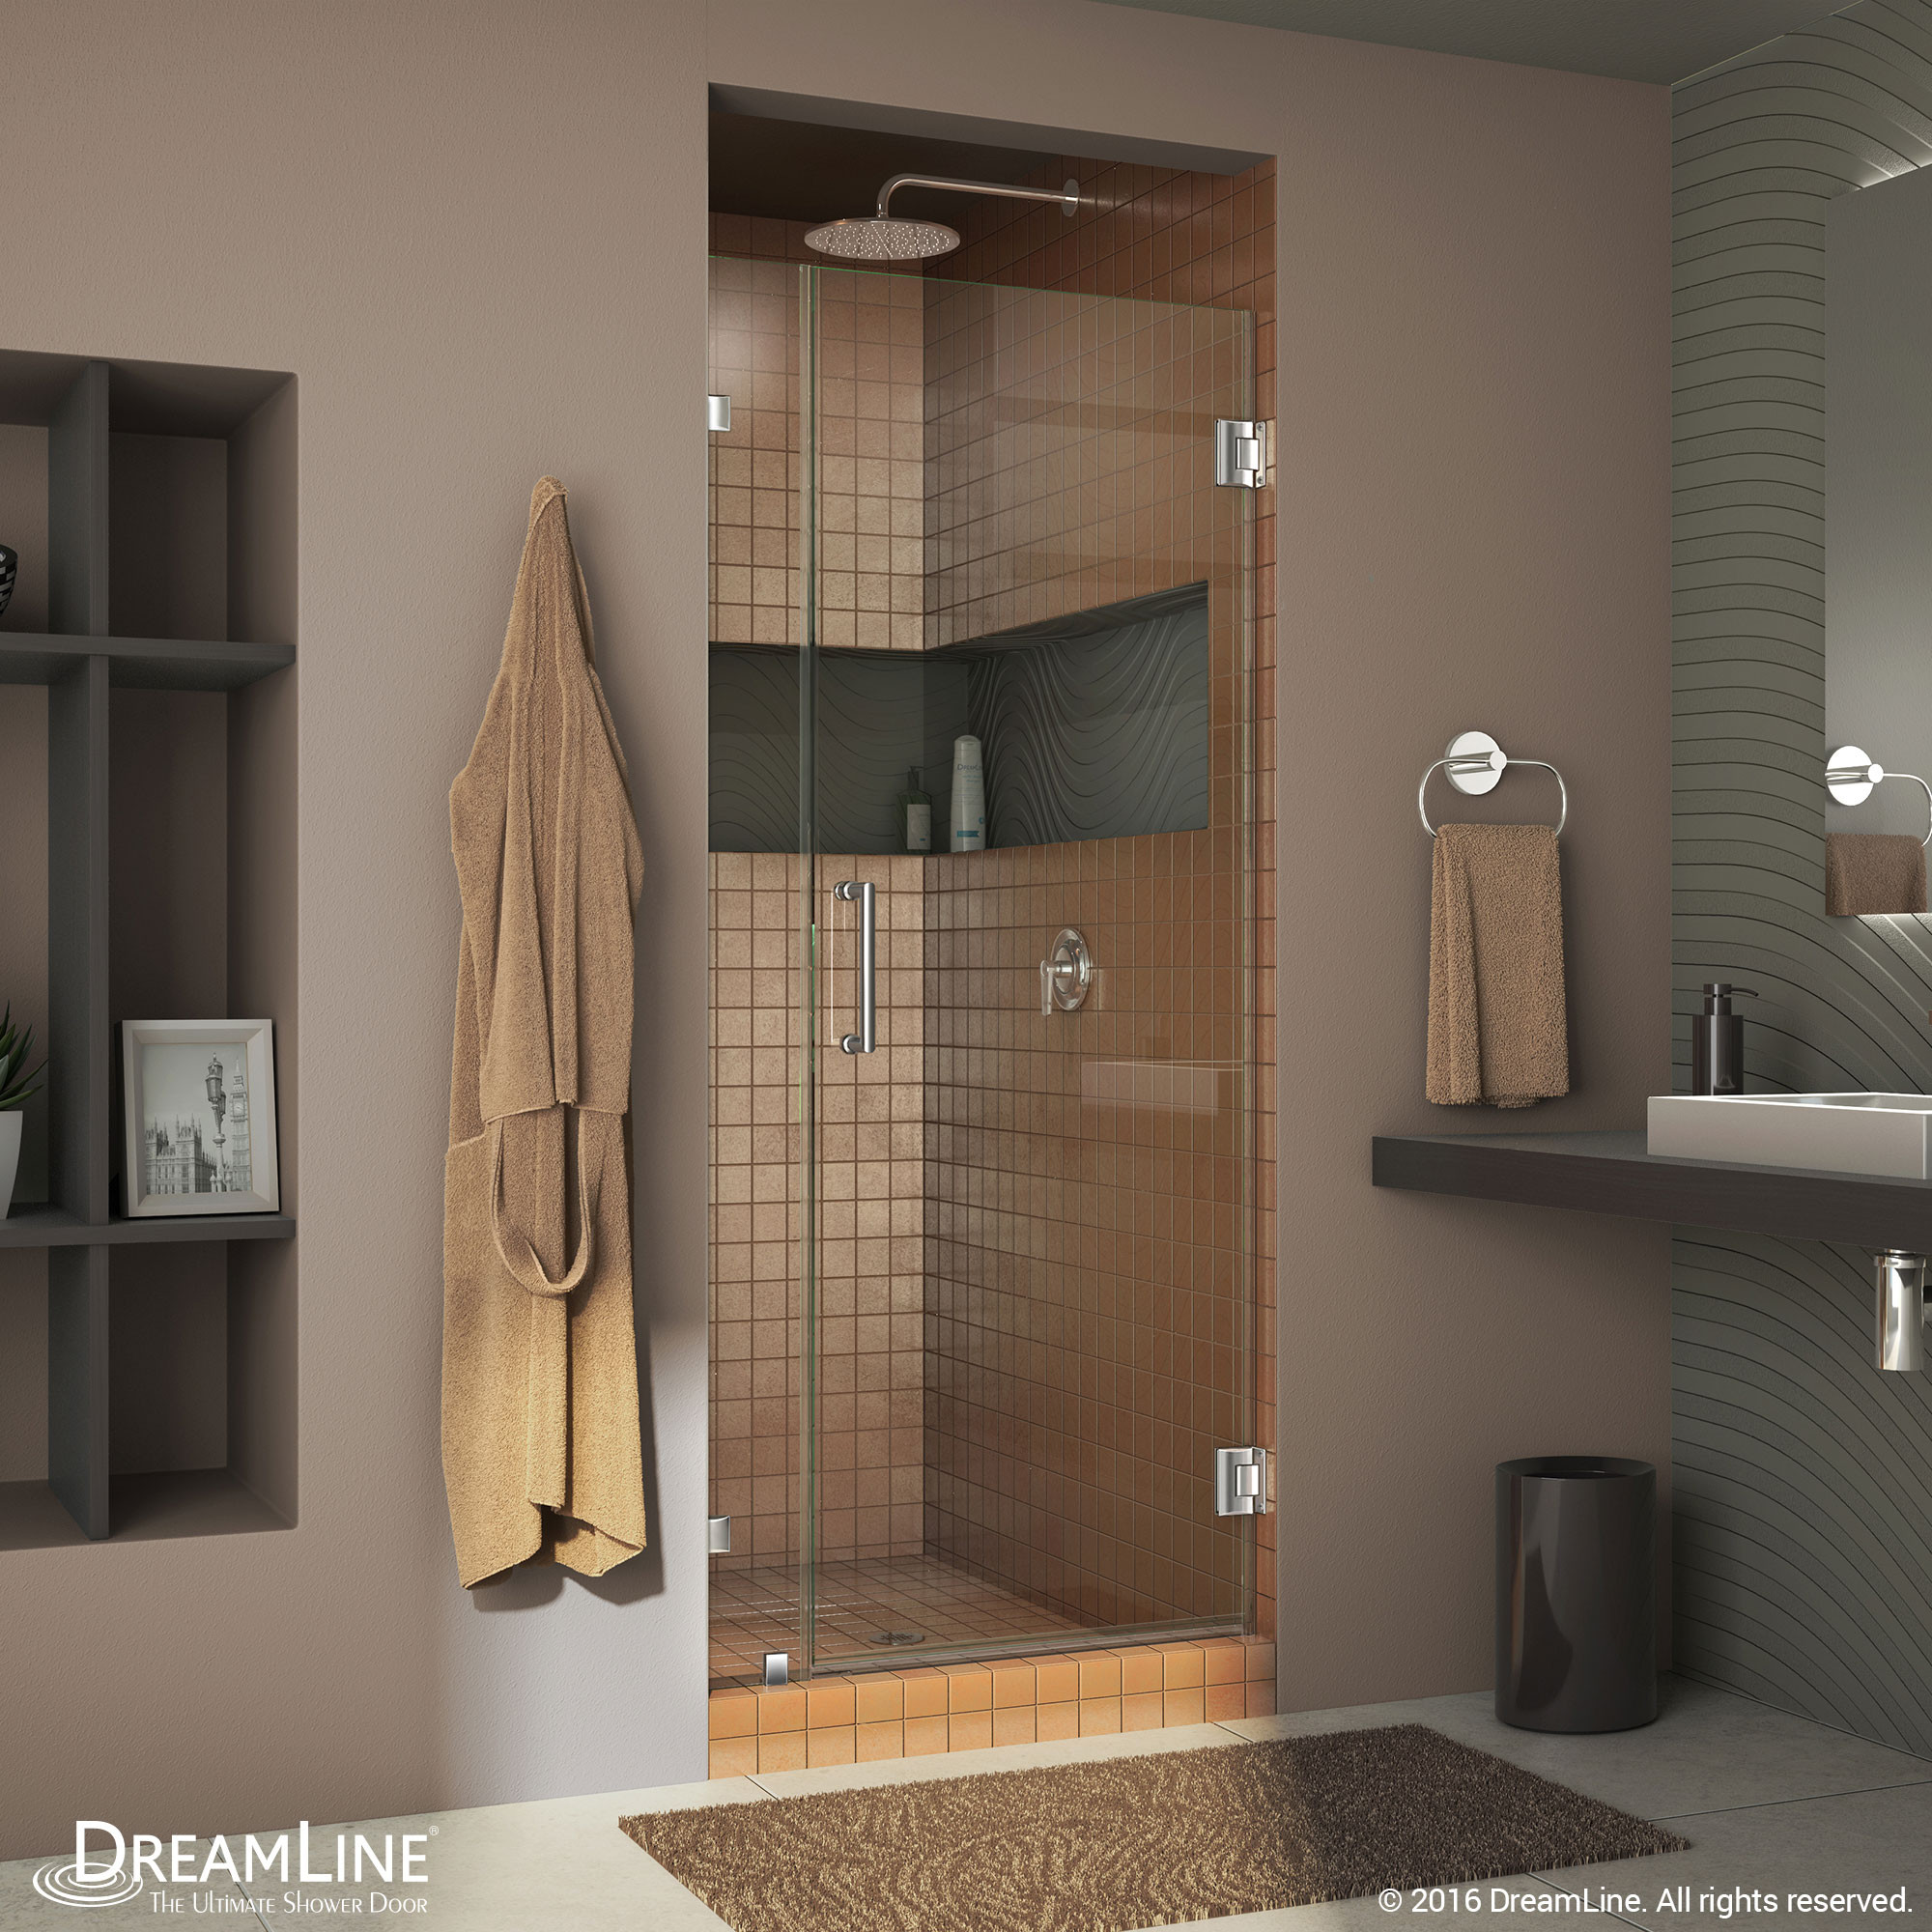 "Dreamline SHDR-23347210-01 Chrome Radiance 34"" Frameless Hinged Shower Door"